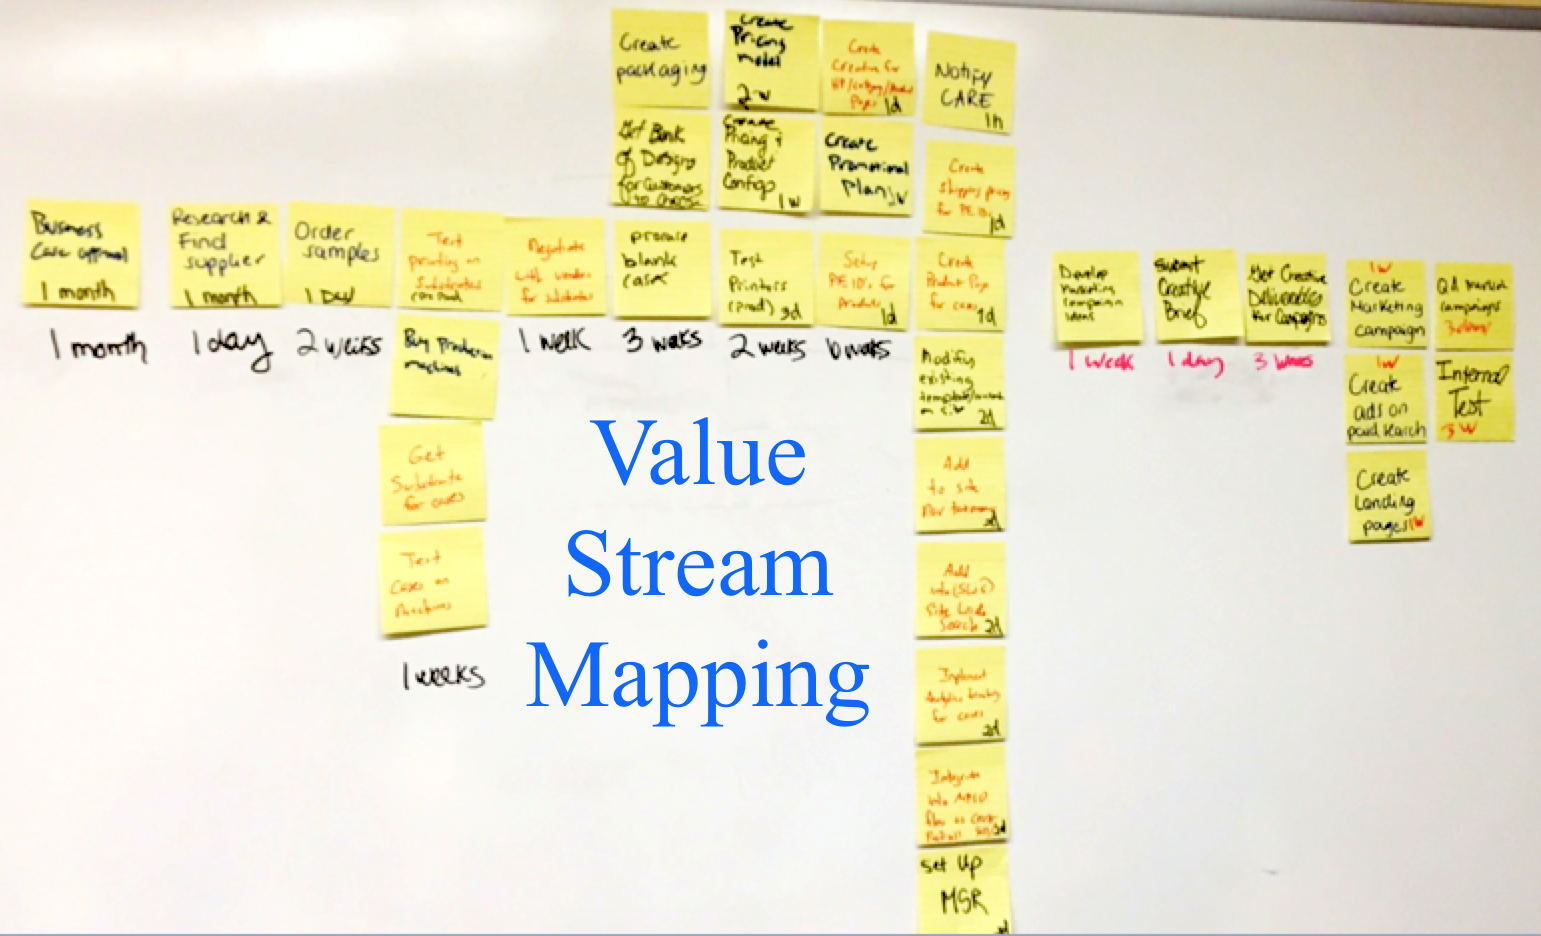 leann stream value essay Applying lean principles to improve healthcare quality and safety page 3 value for the customer by providing higher quality and safety with less waste identify value stream evaluate how all the steps of.